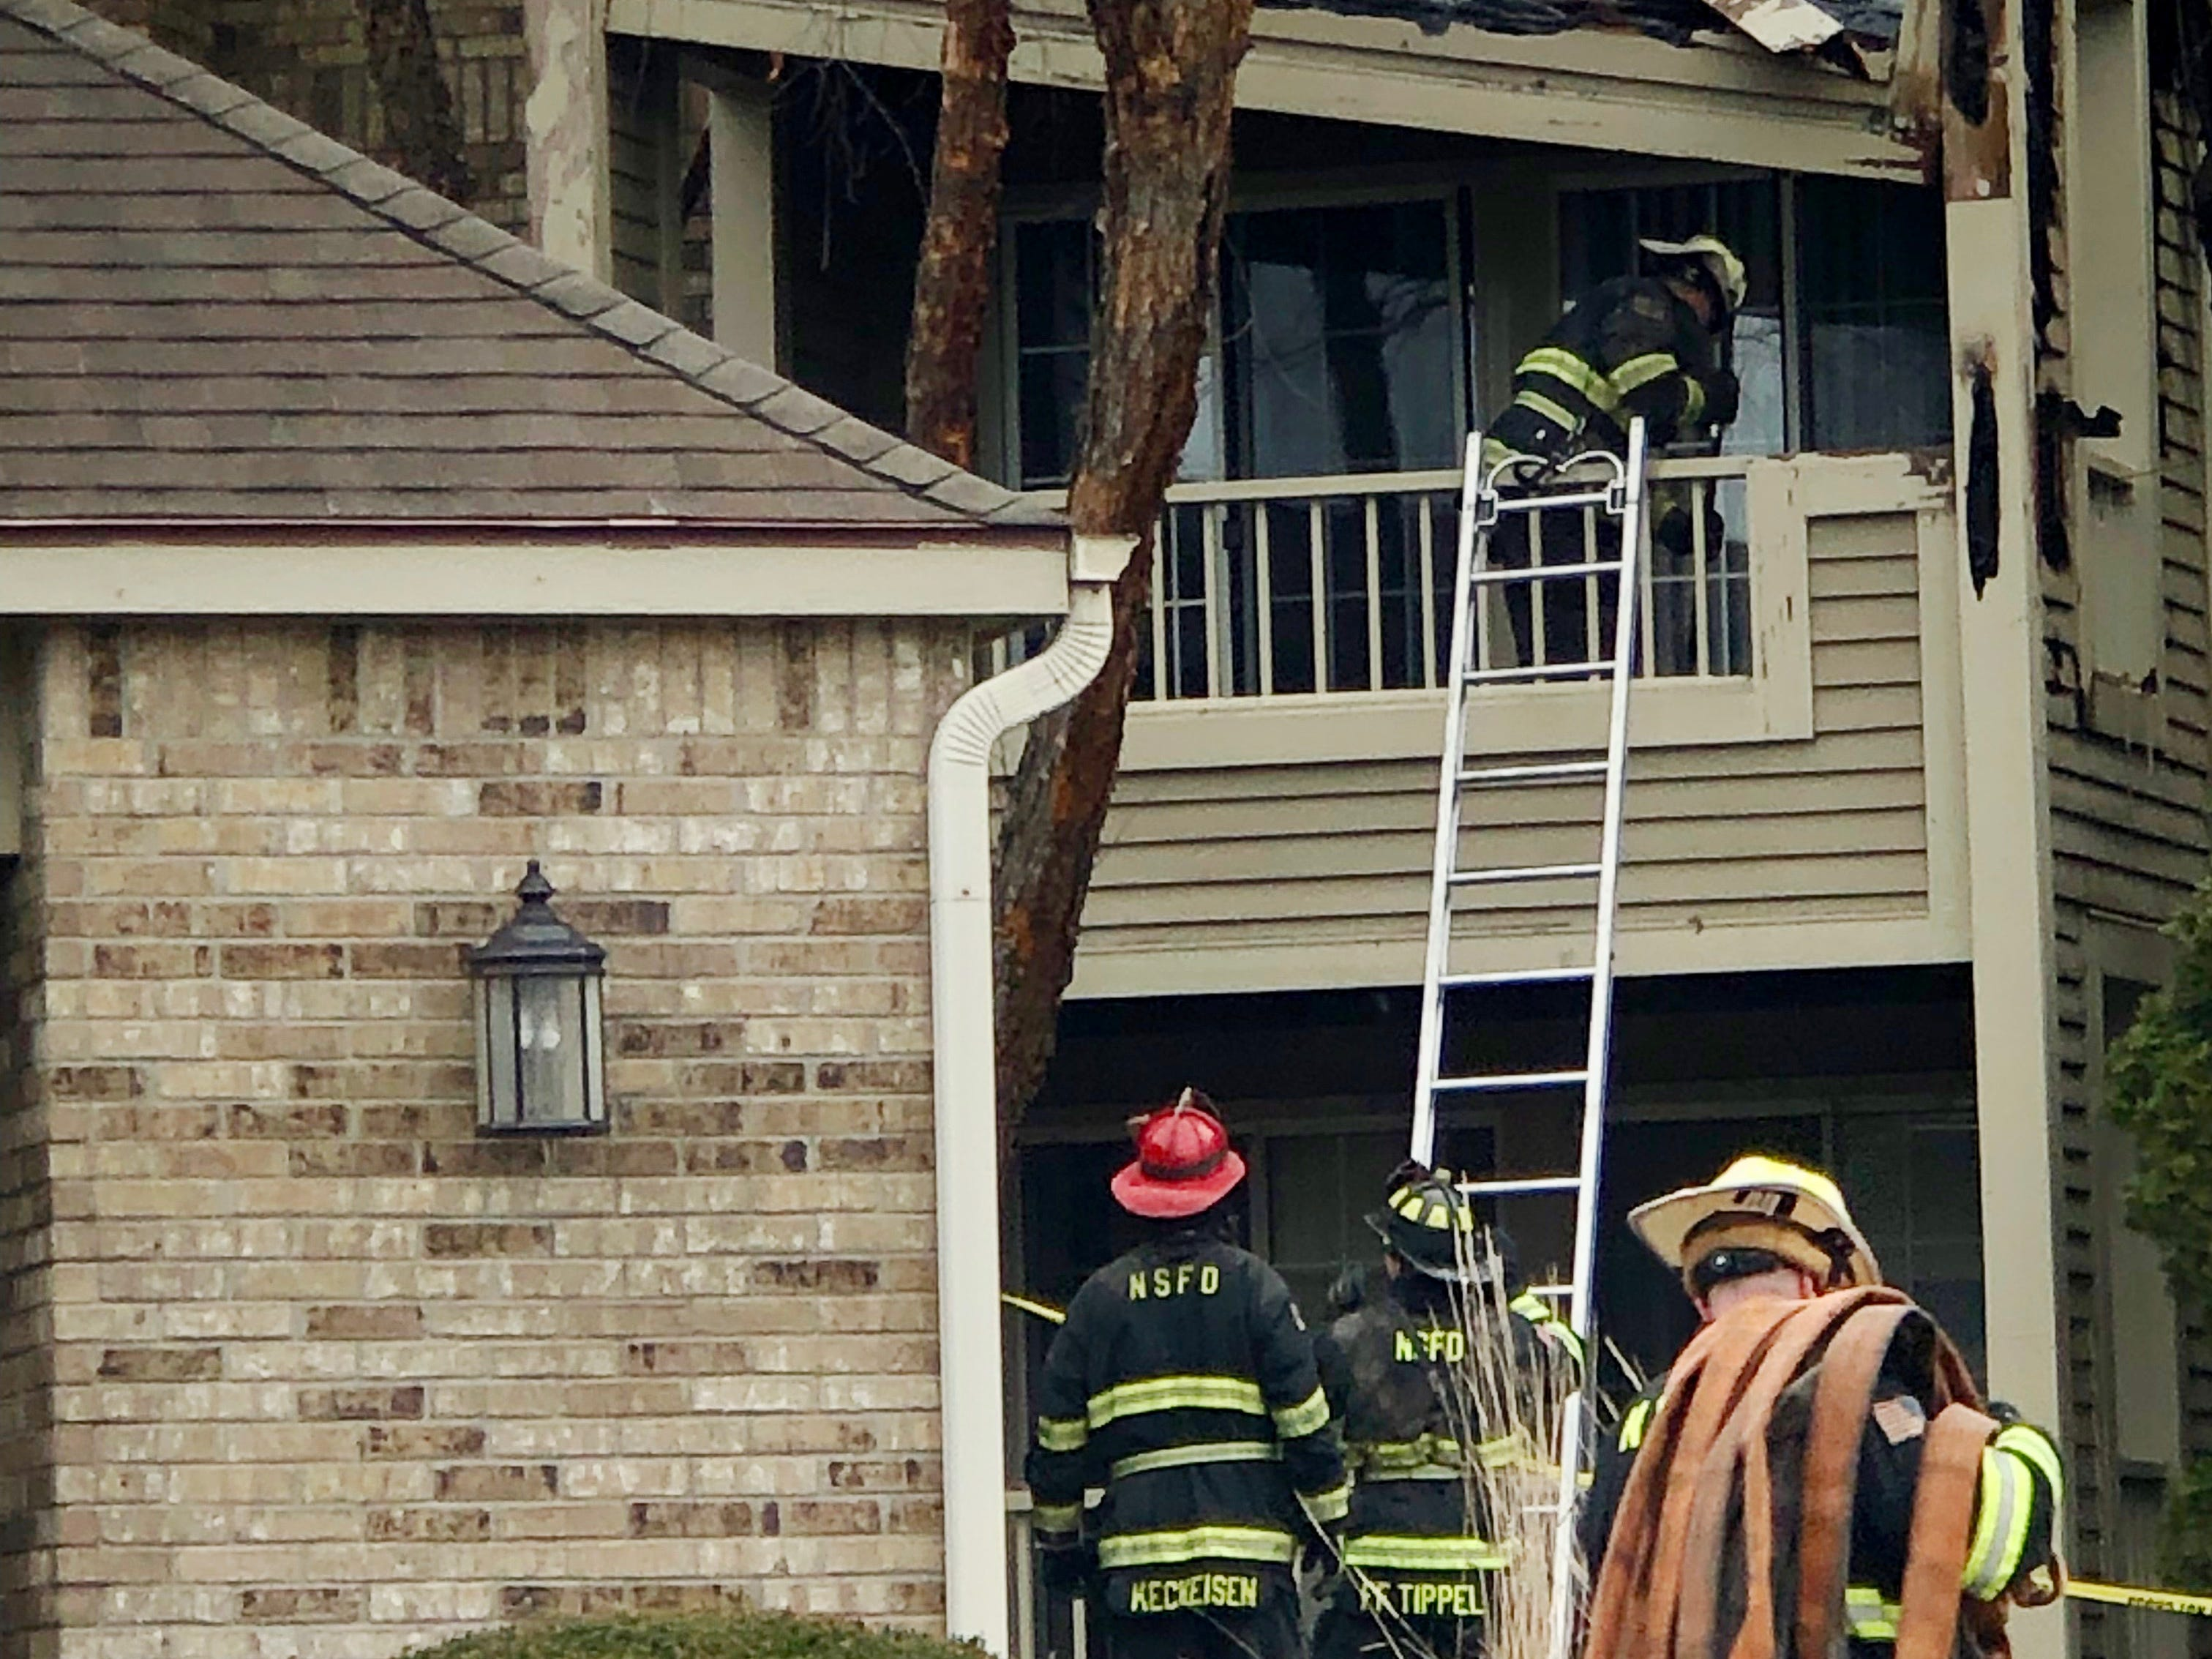 Firefighters on the scene search an apartment at White Oaks in Bayside.